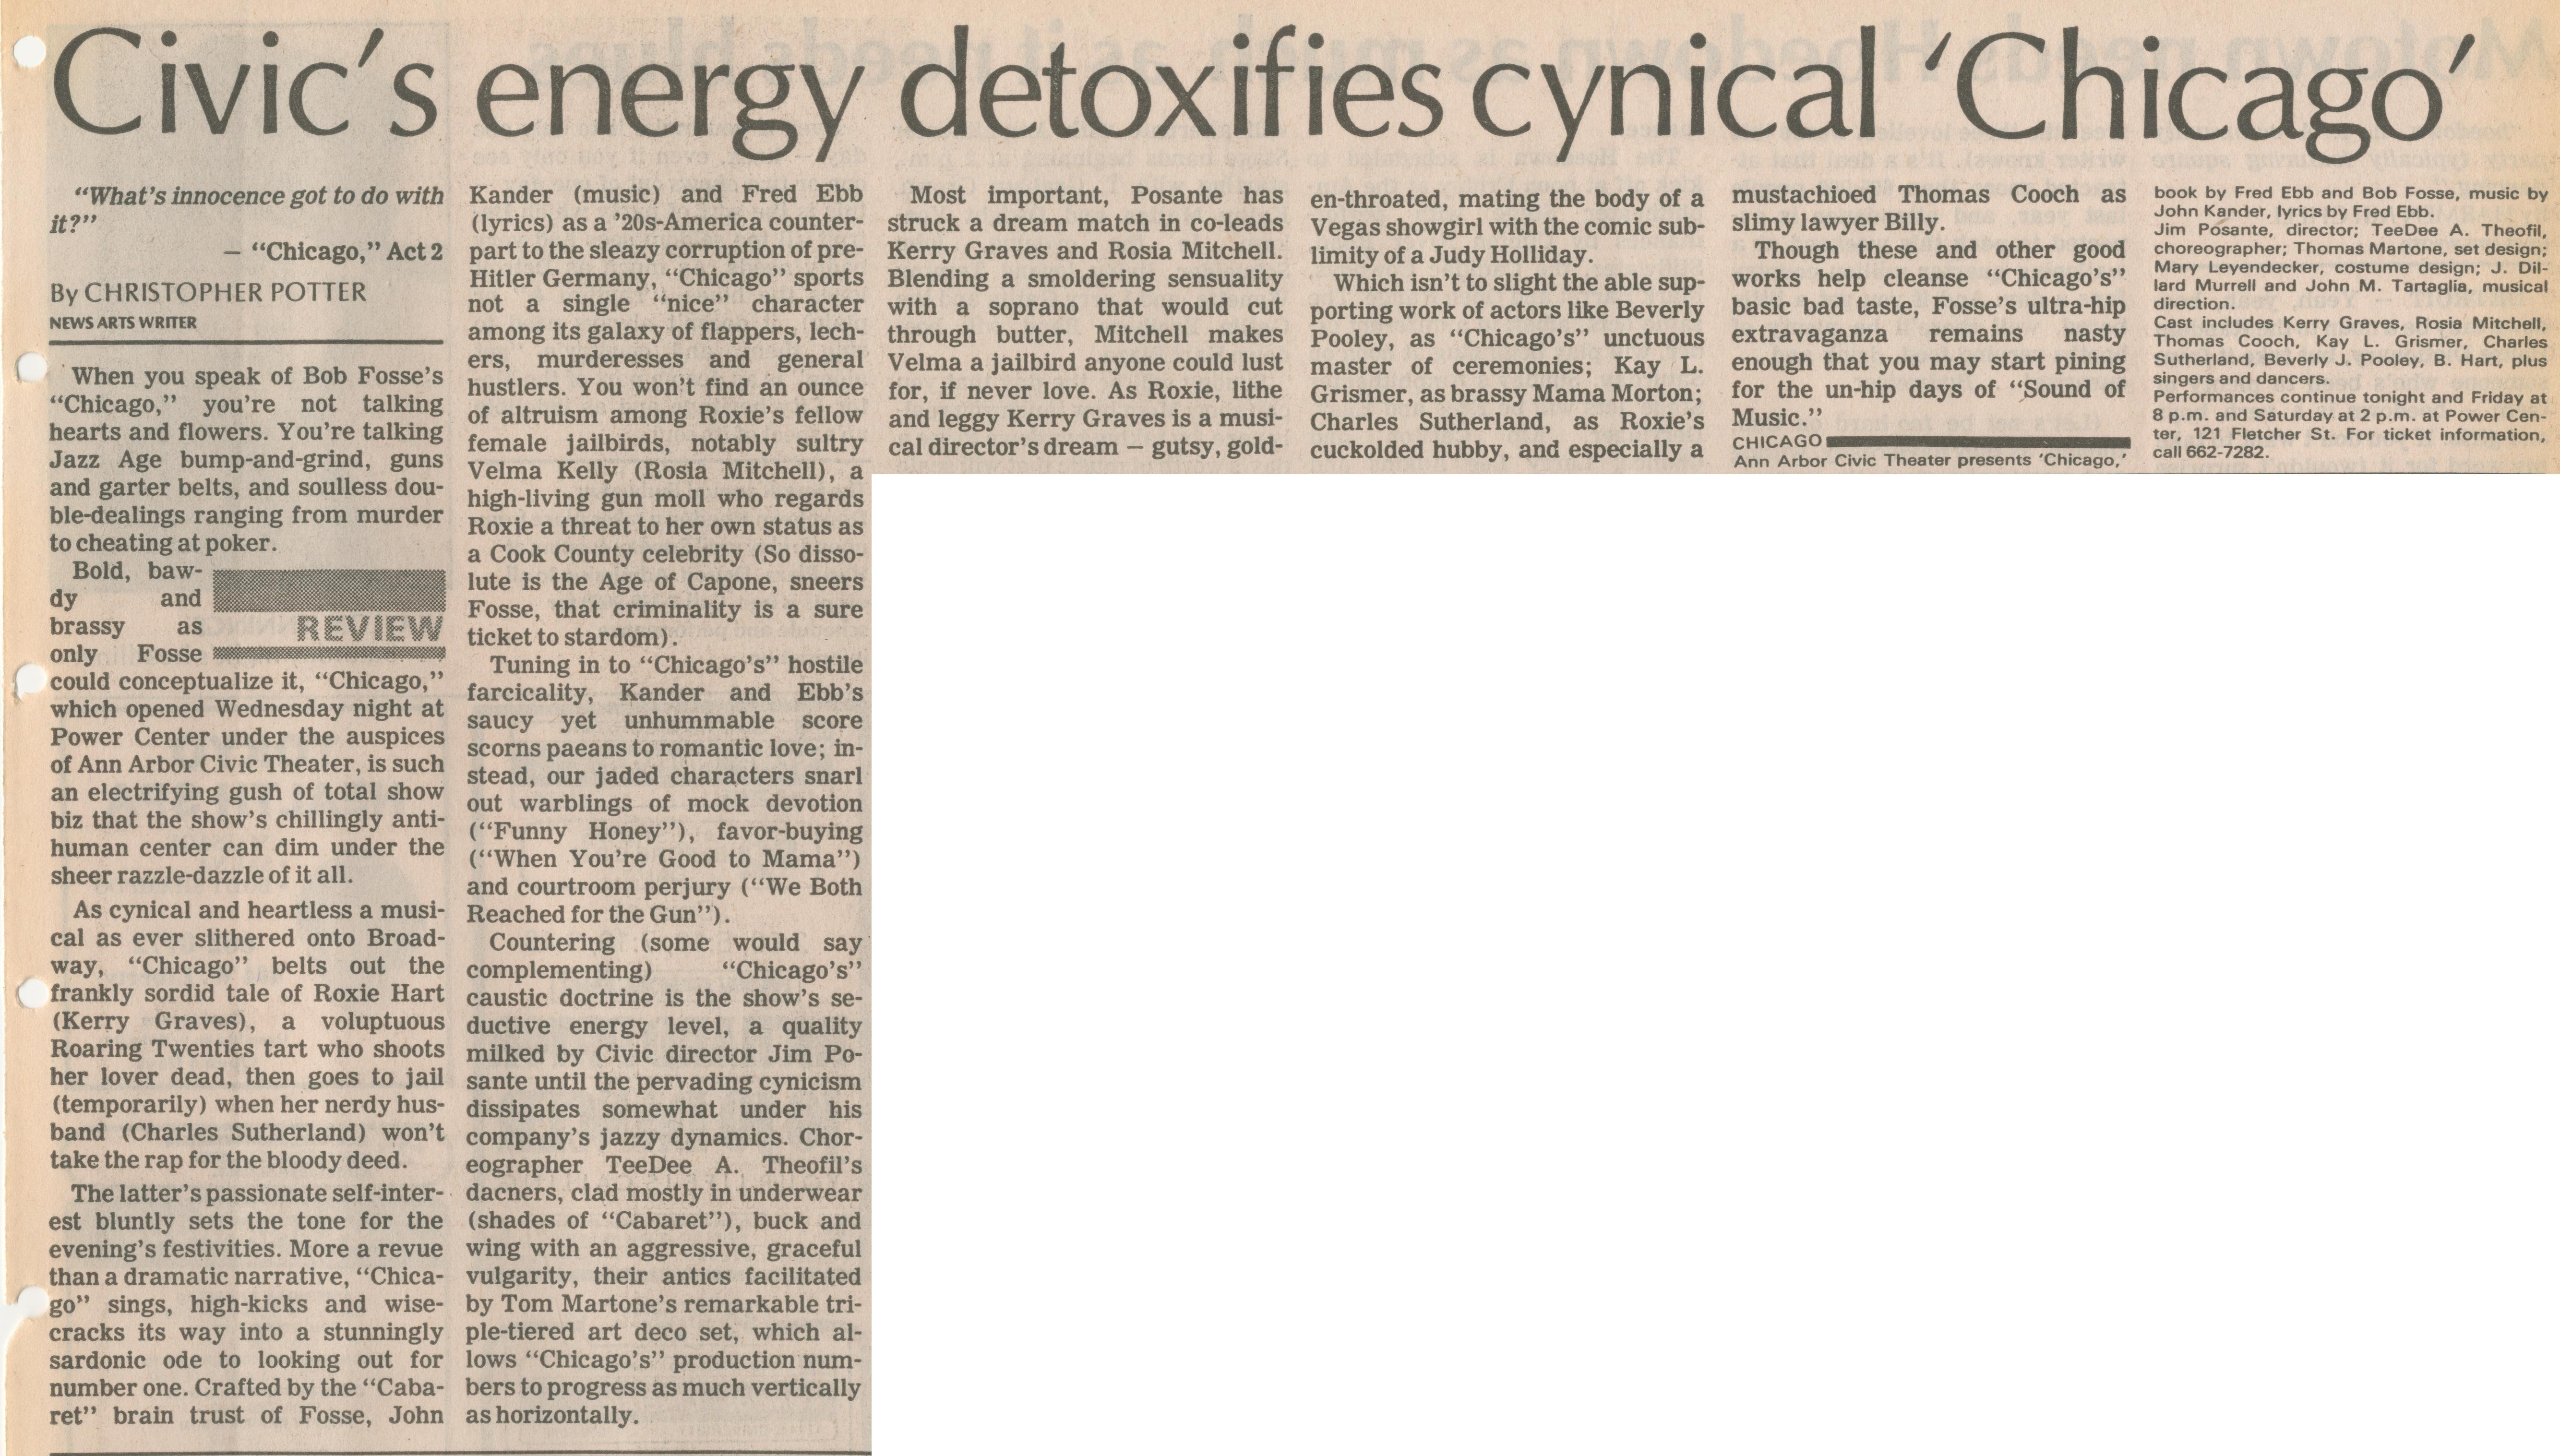 Civic's Energy Detoxifies Cynical 'Chicago' image